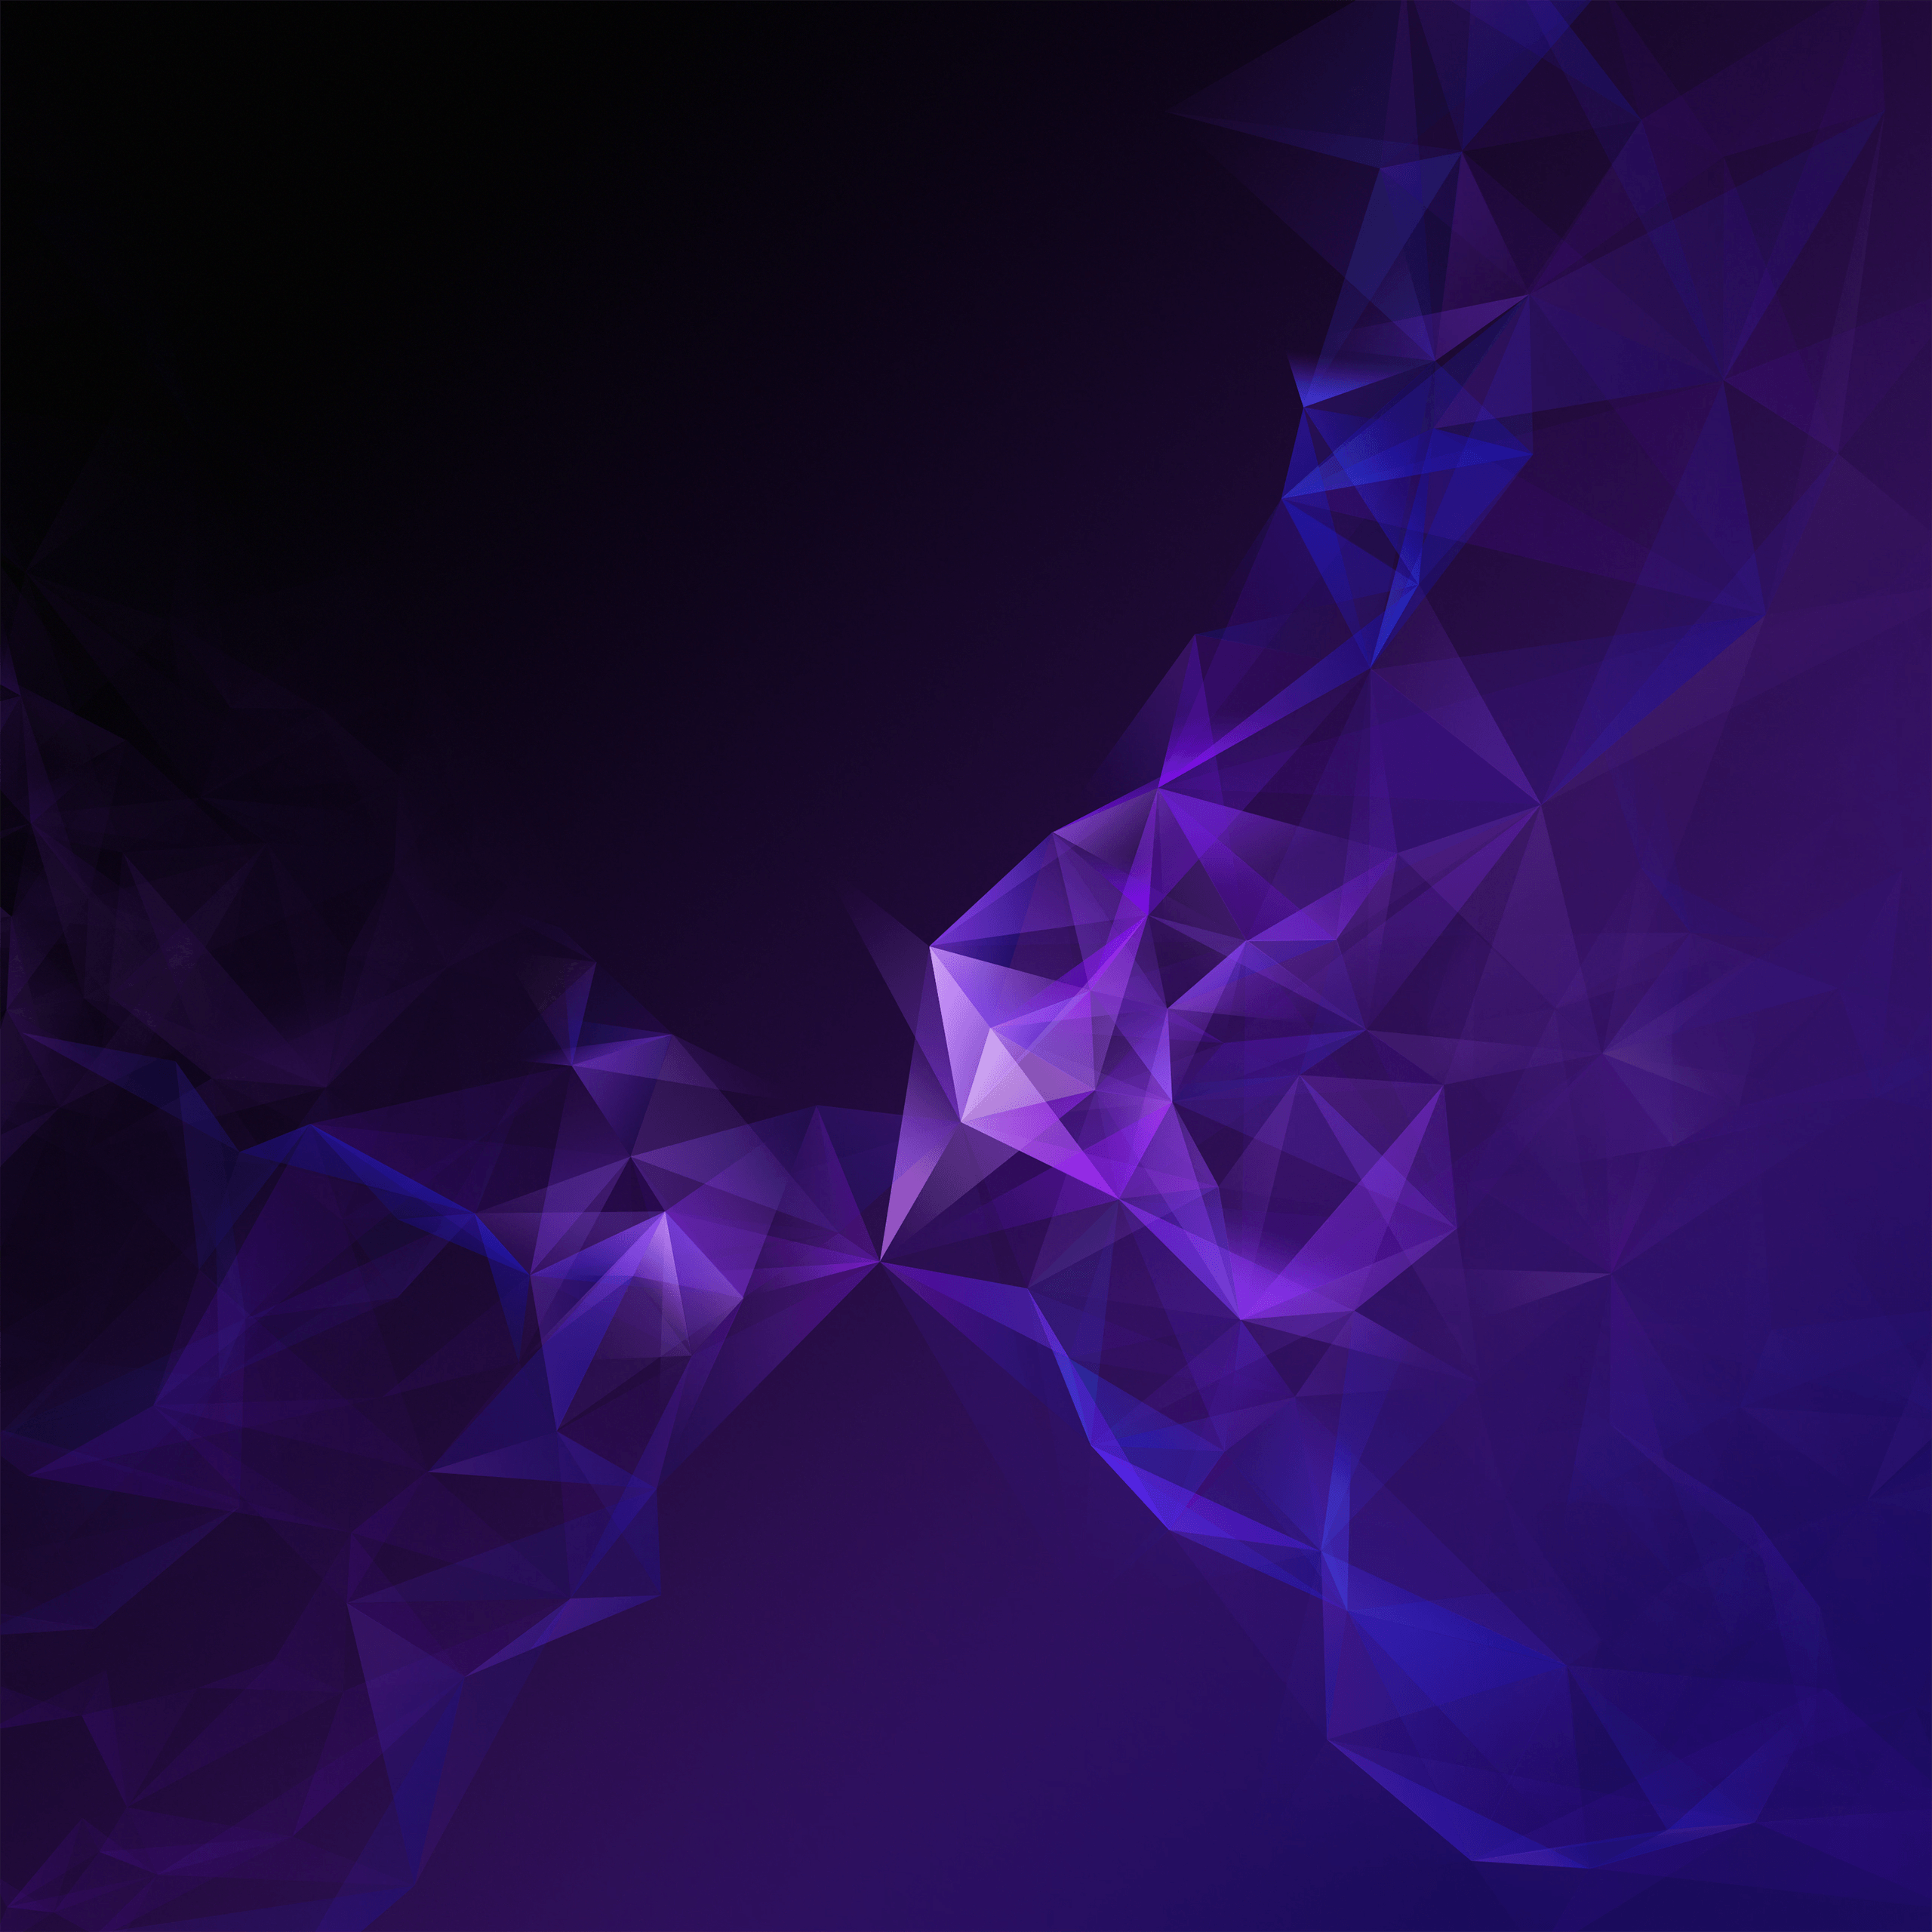 Galaxy S9 Wallpaper 18